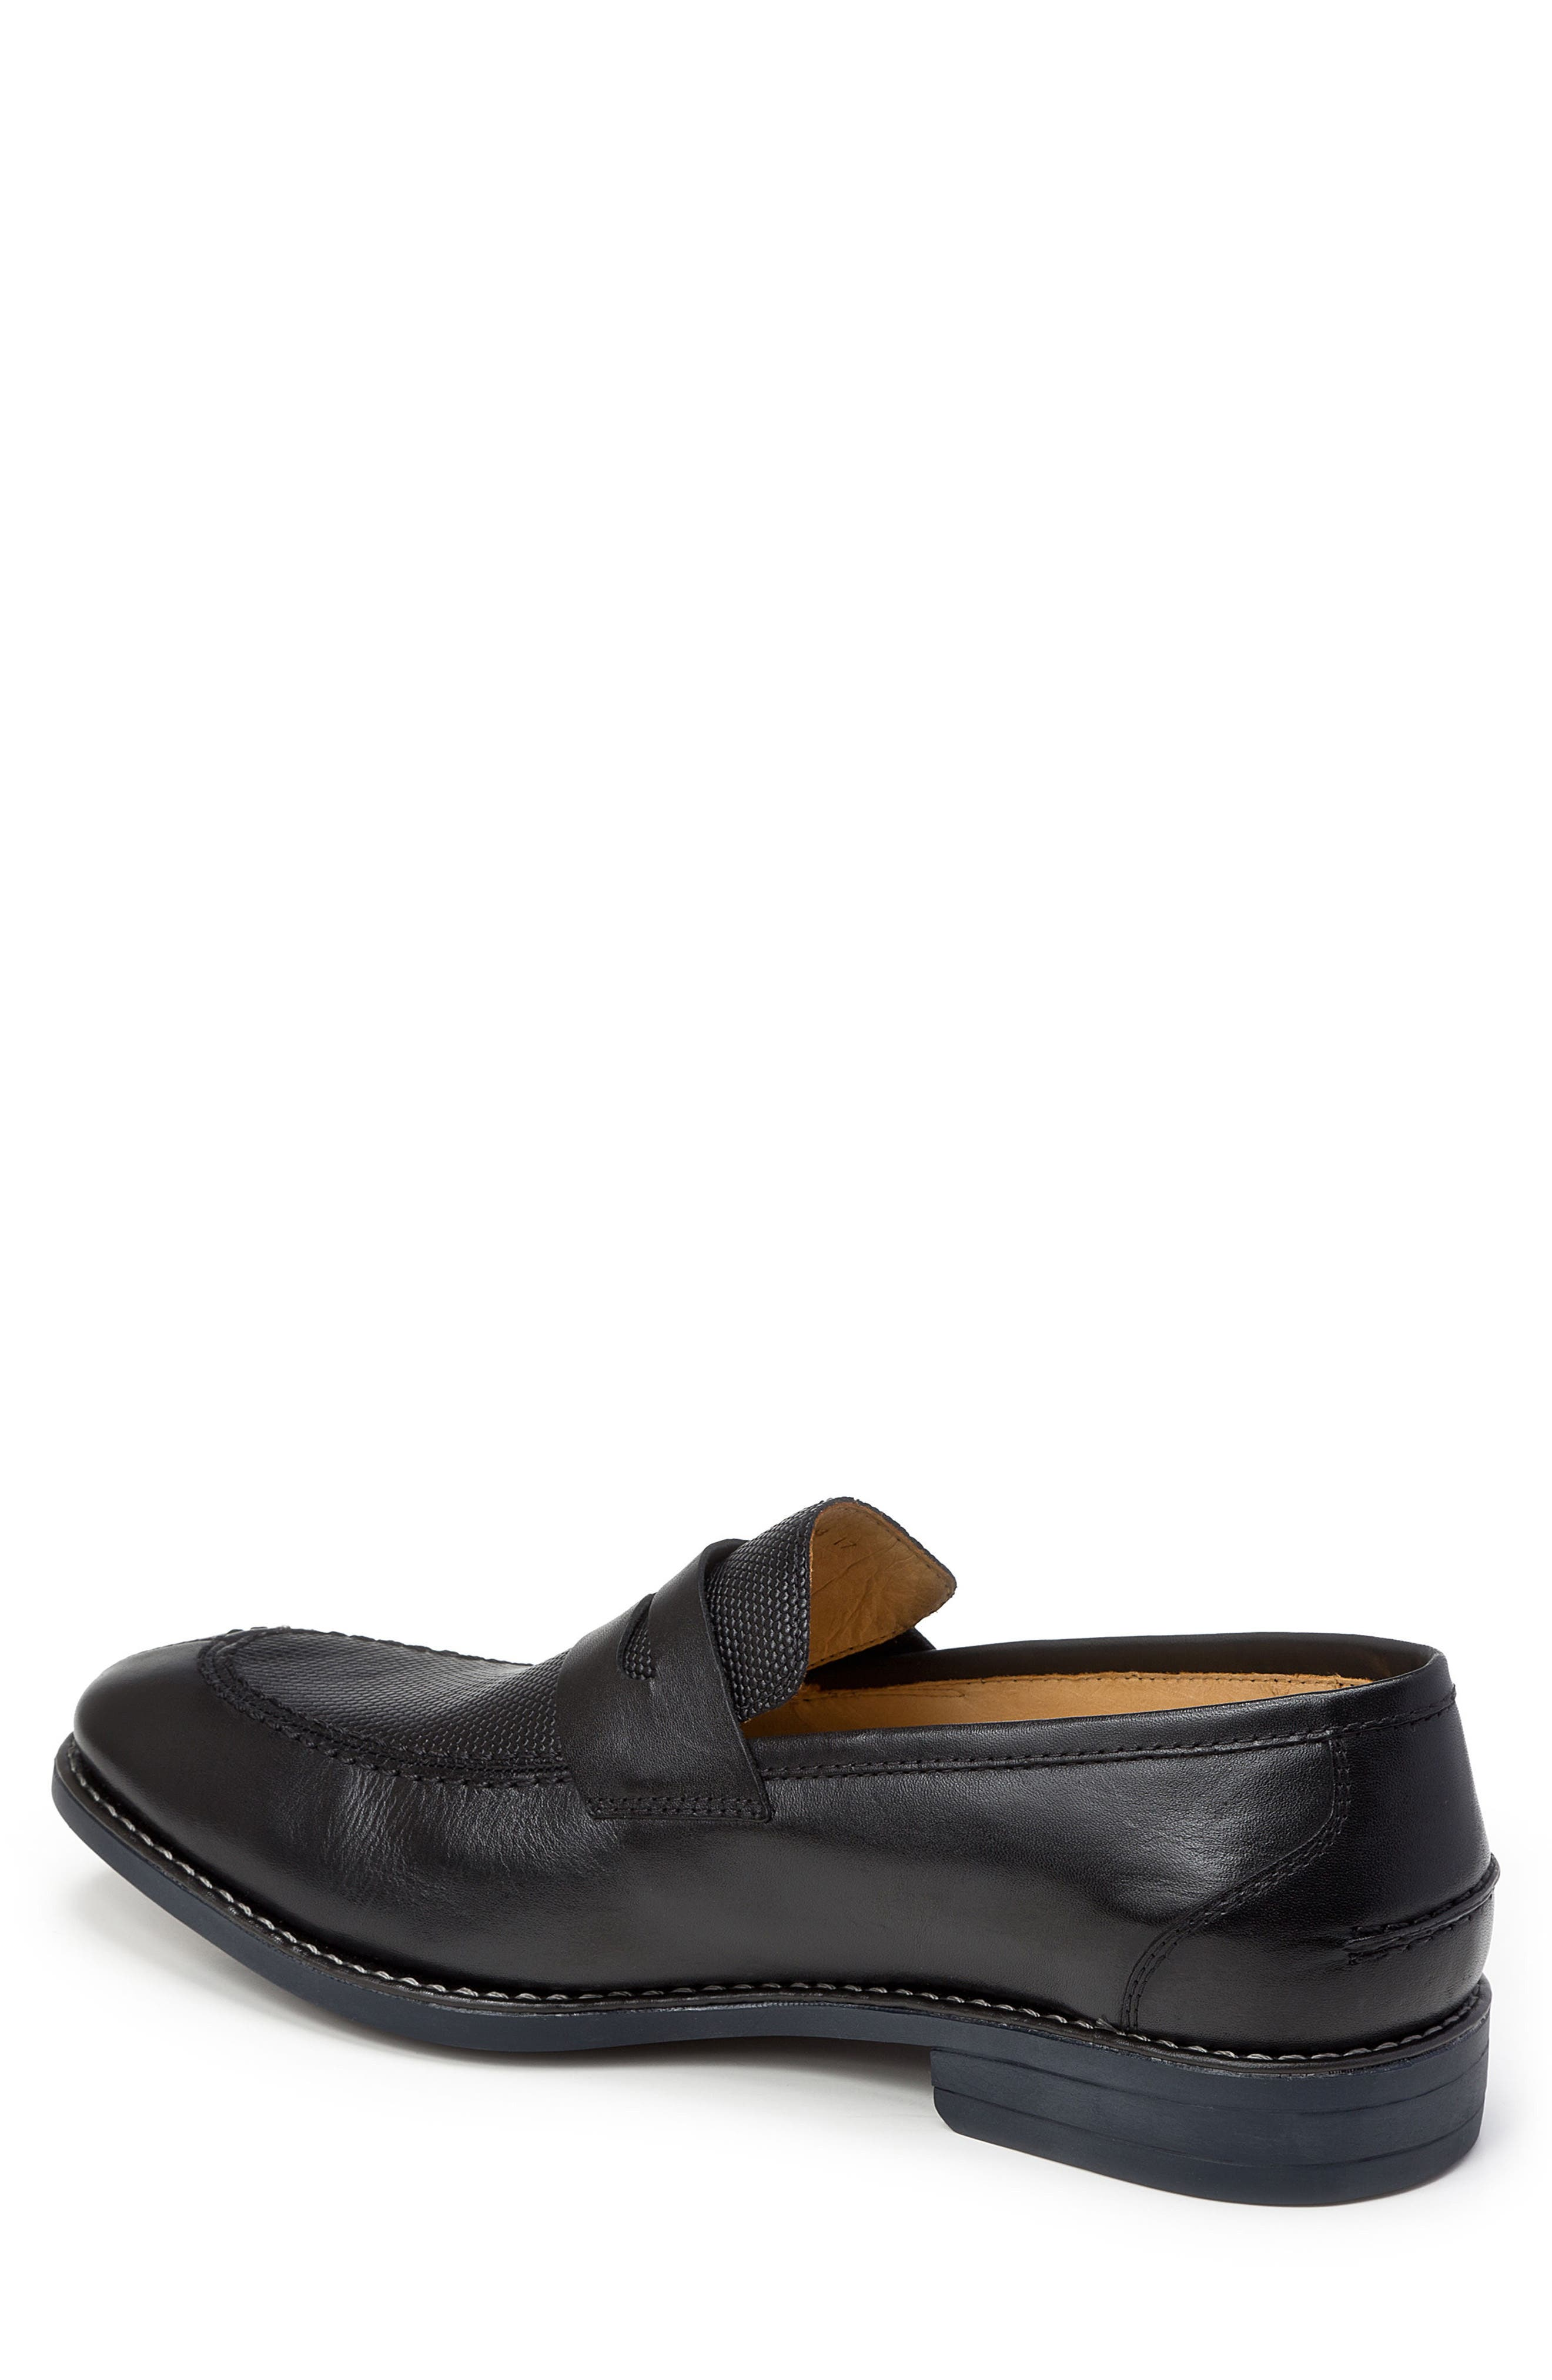 Maestro Penny Loafer,                             Alternate thumbnail 2, color,                             BLACK LEATHER